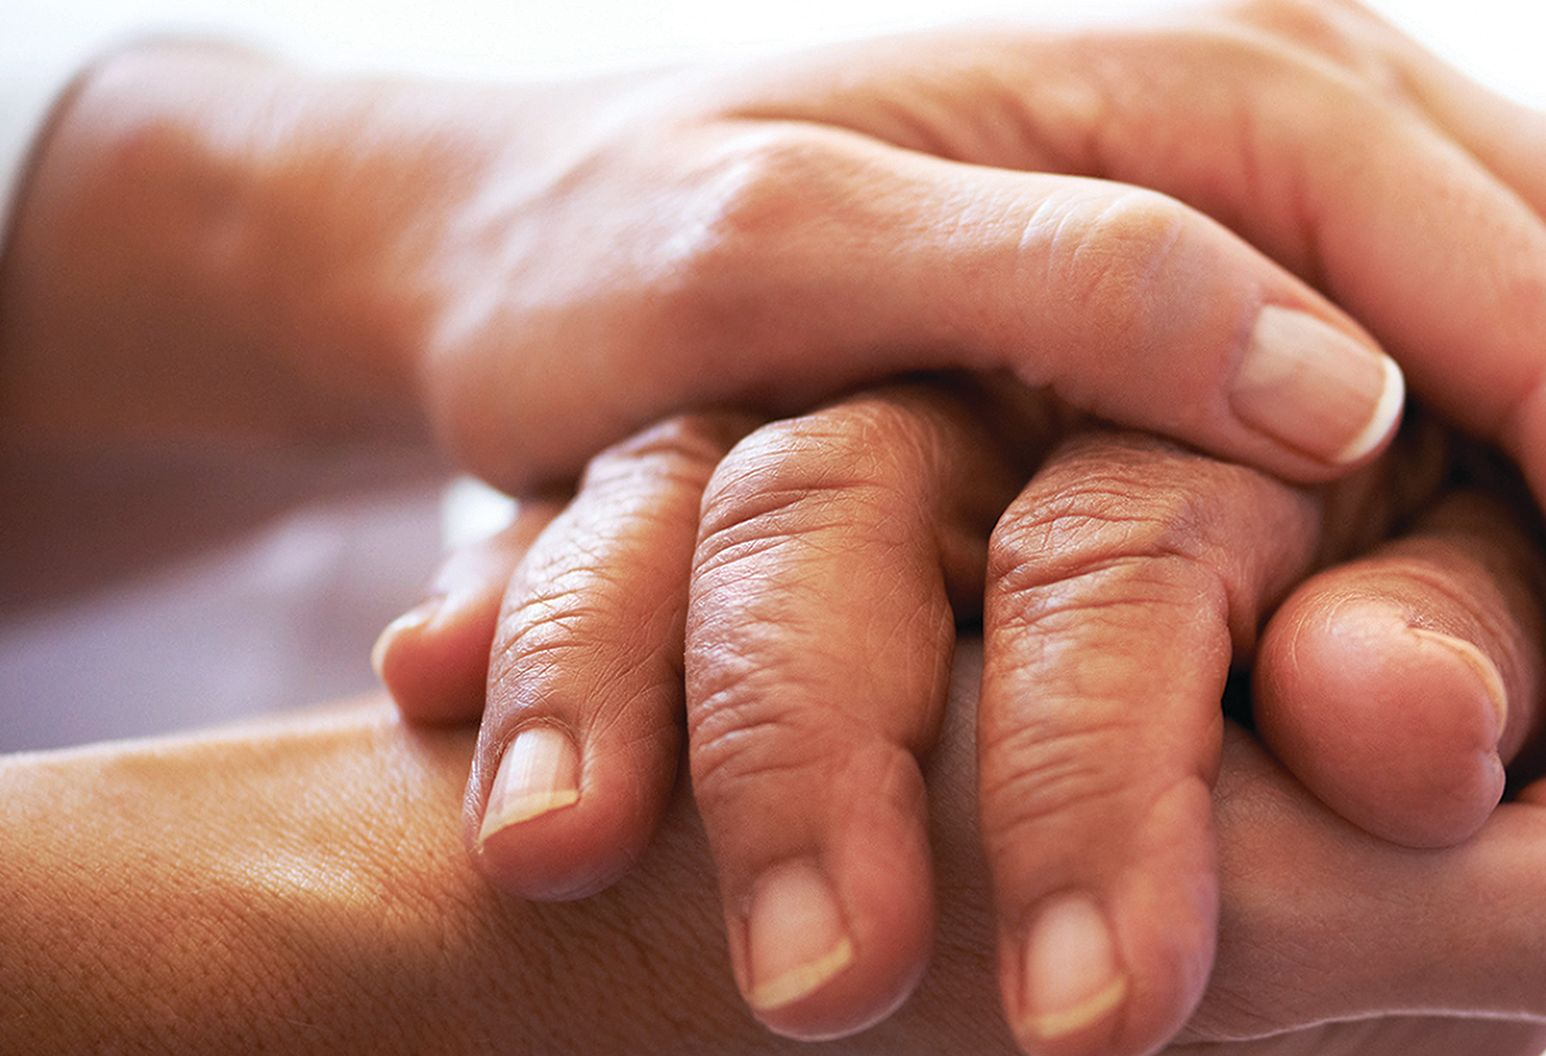 Close up picture of an elderly hand clasped between two younger hands